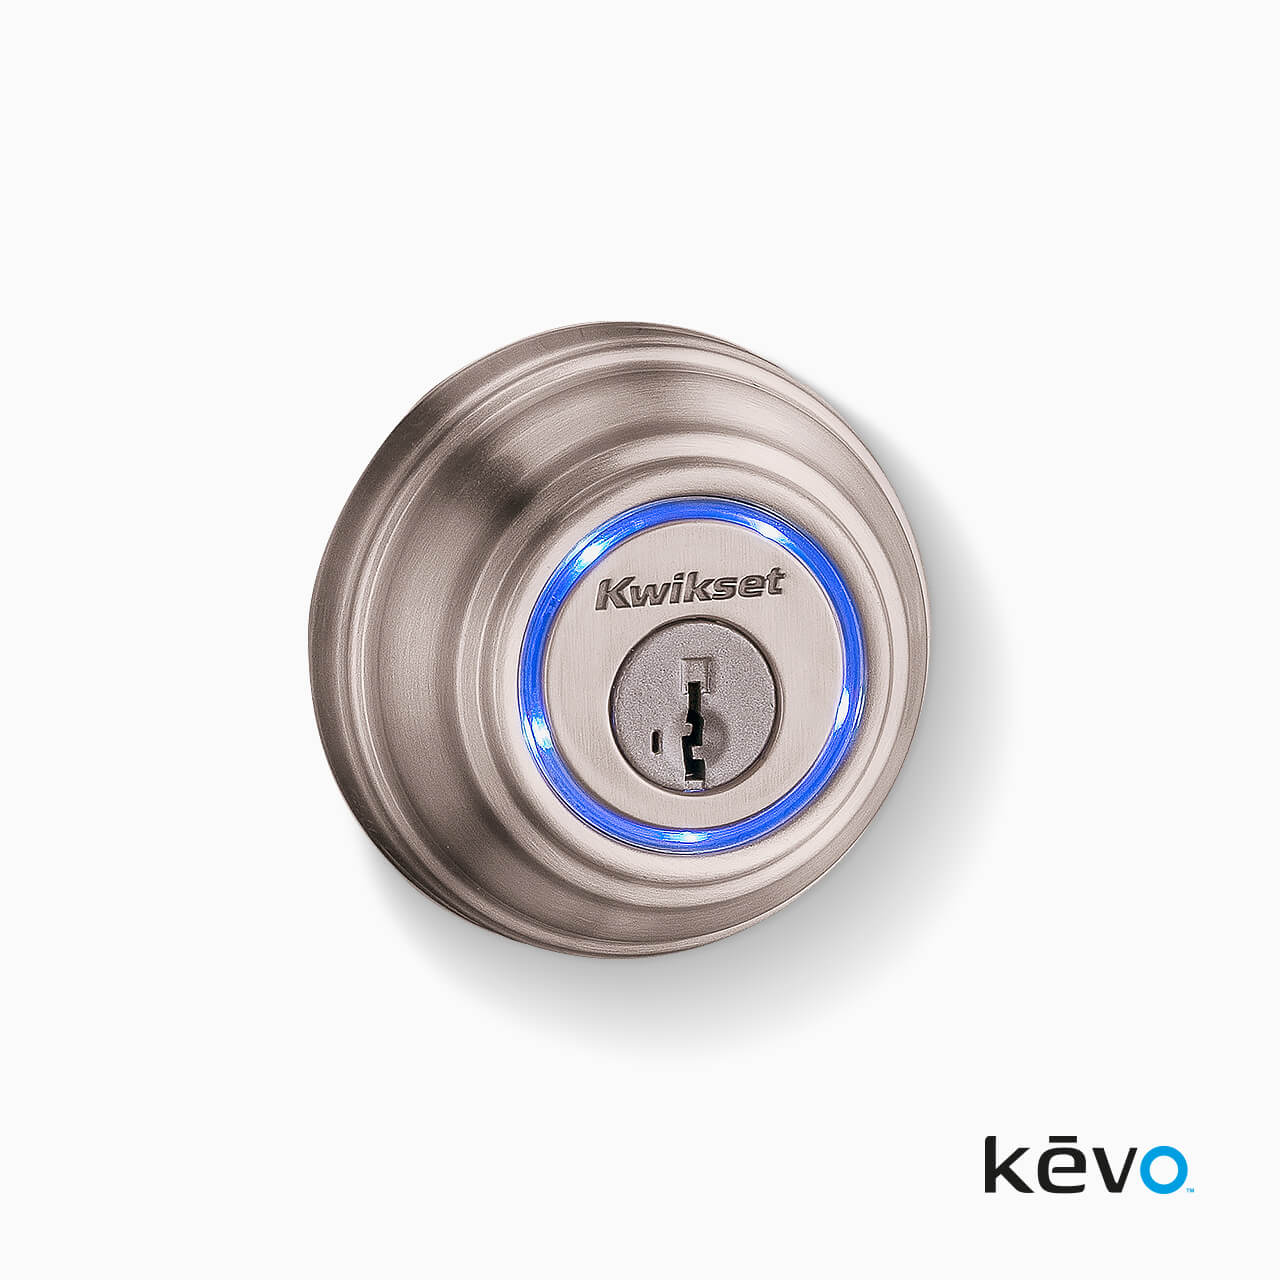 Kevo Traditional Touch-to-Open Smart Lock